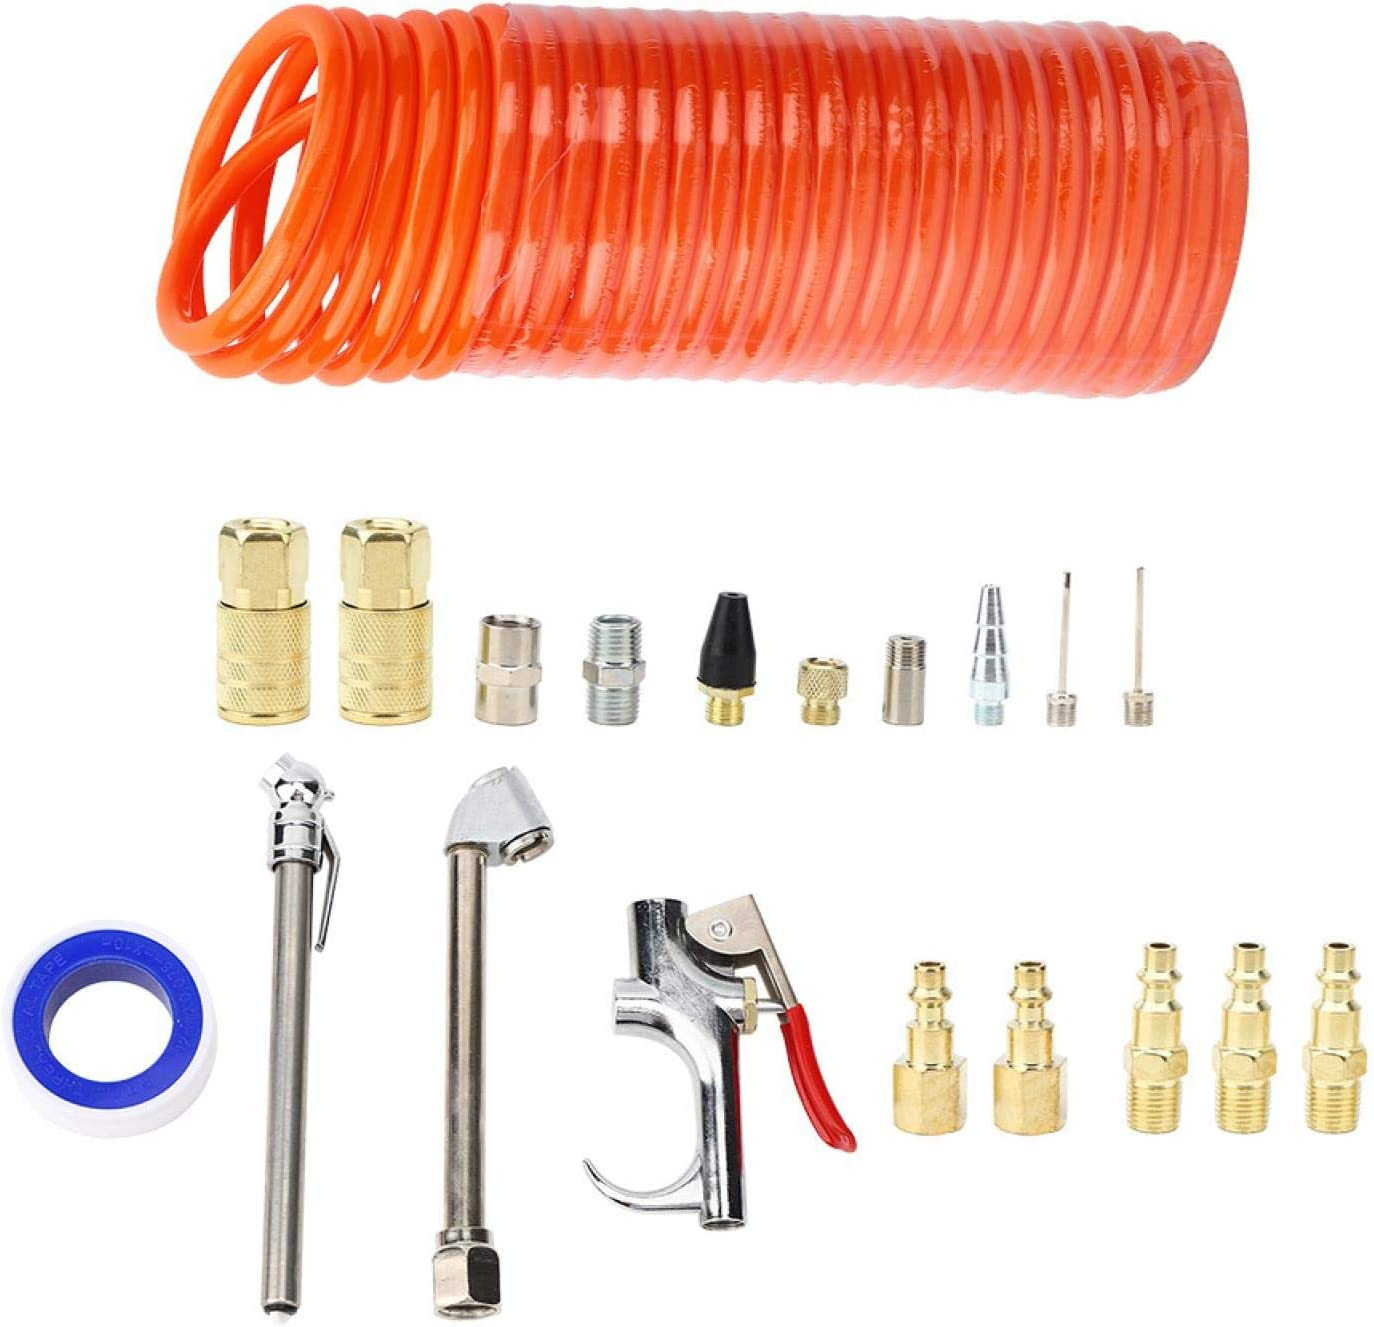 Air Compressor Fittings 20Pcs 25 Special price Memphis Mall for a limited time Ft Durable Convenient Compress